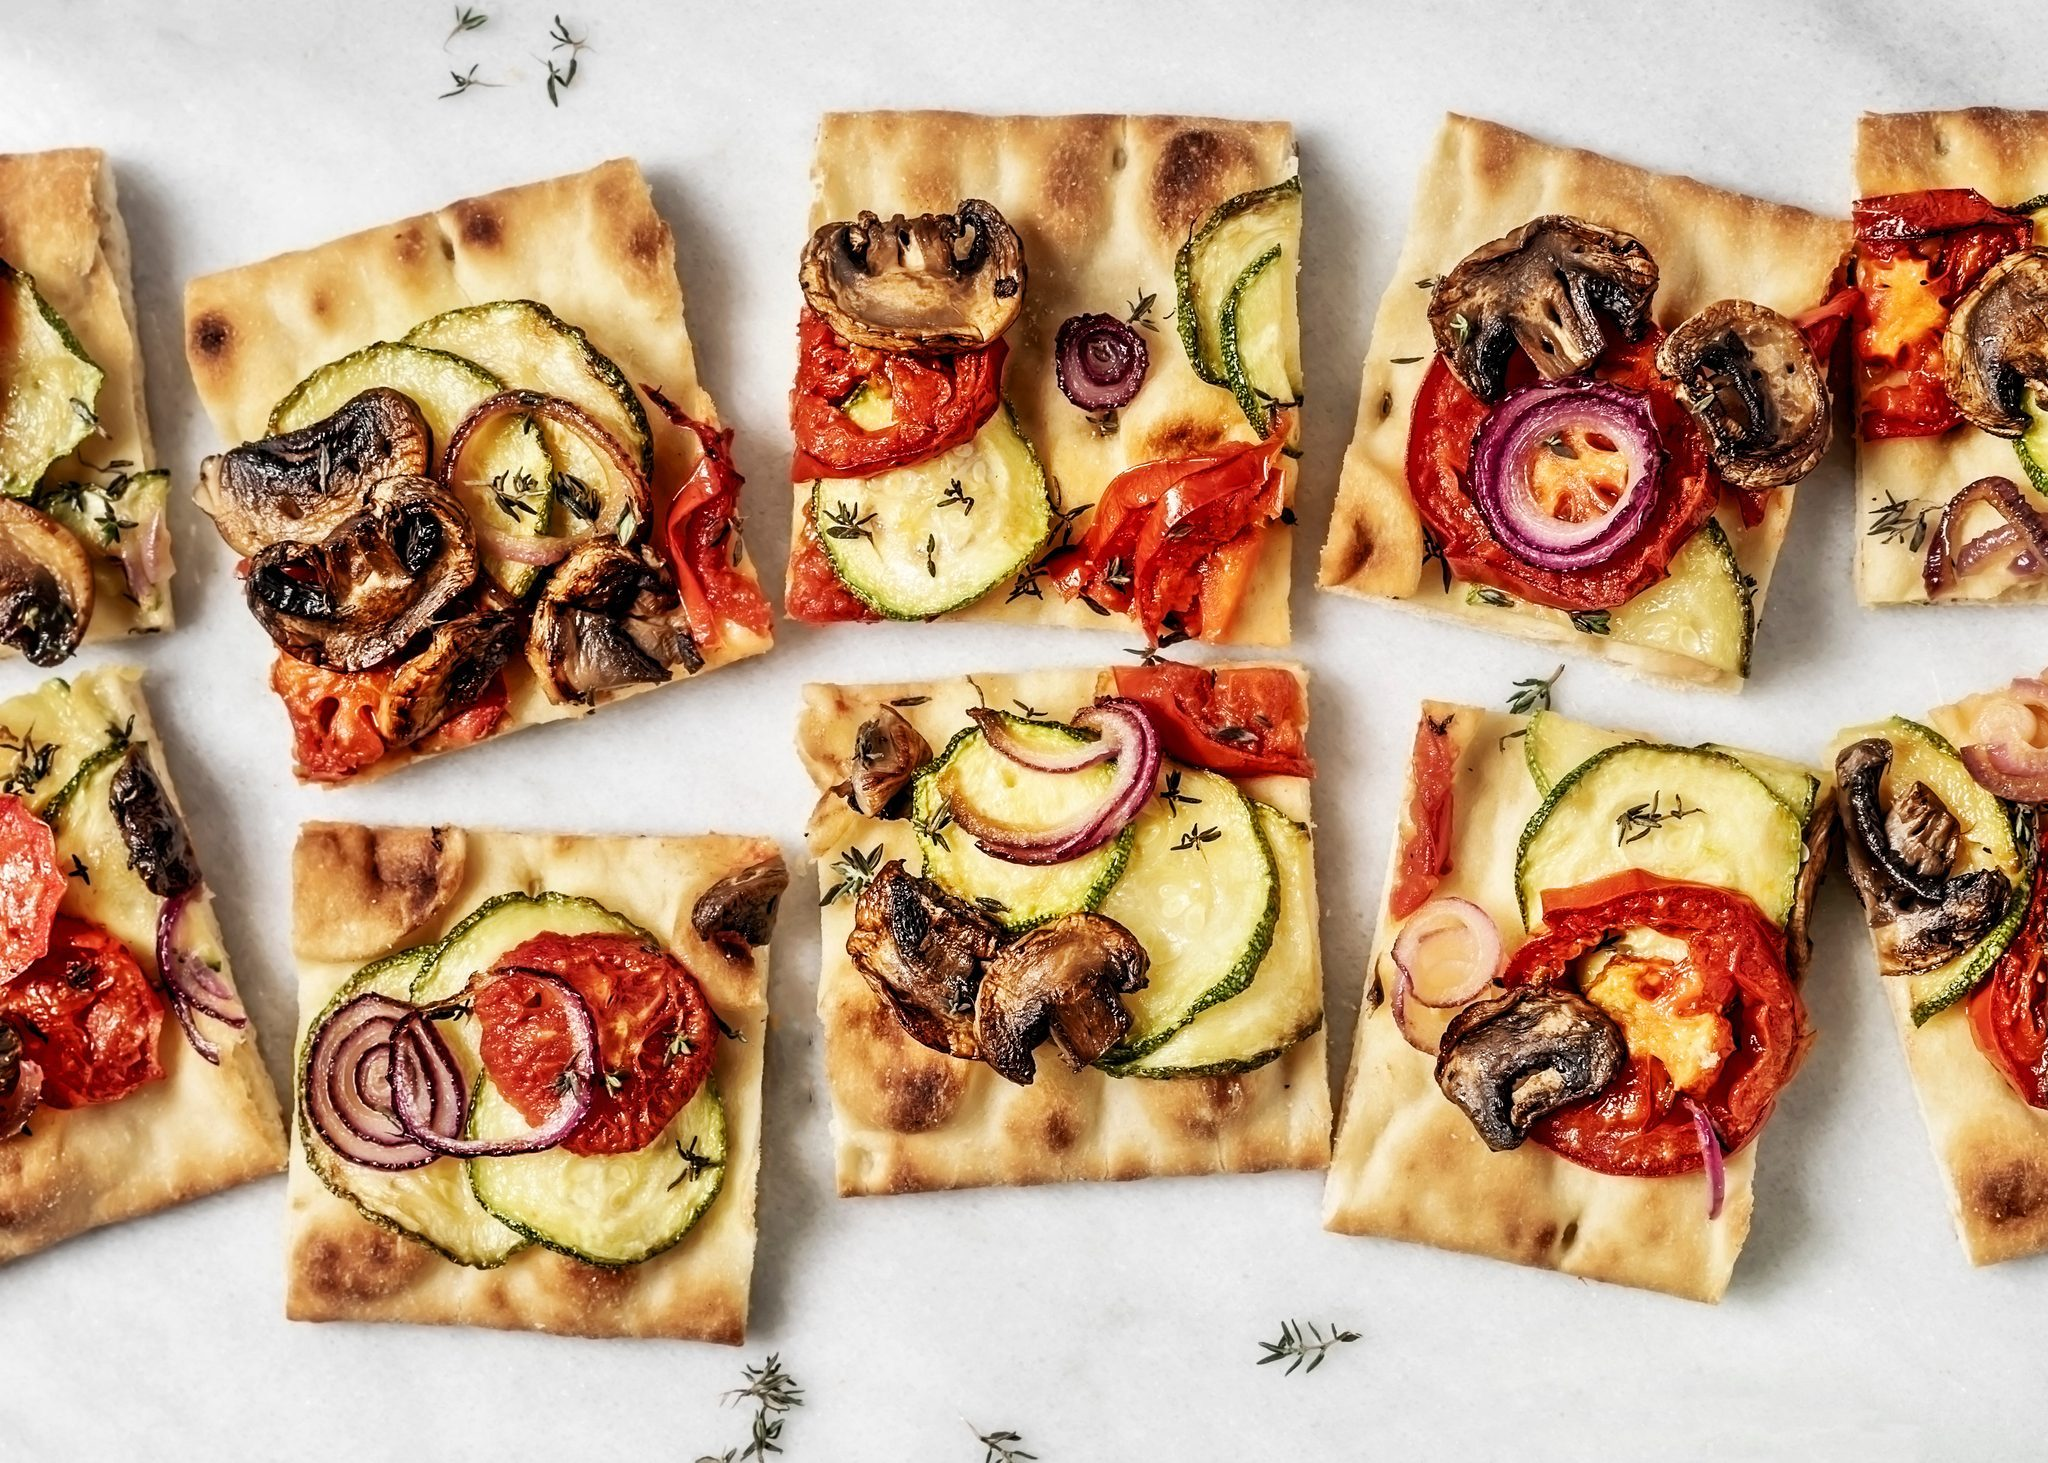 Vegetarian flatbread pizza on white background